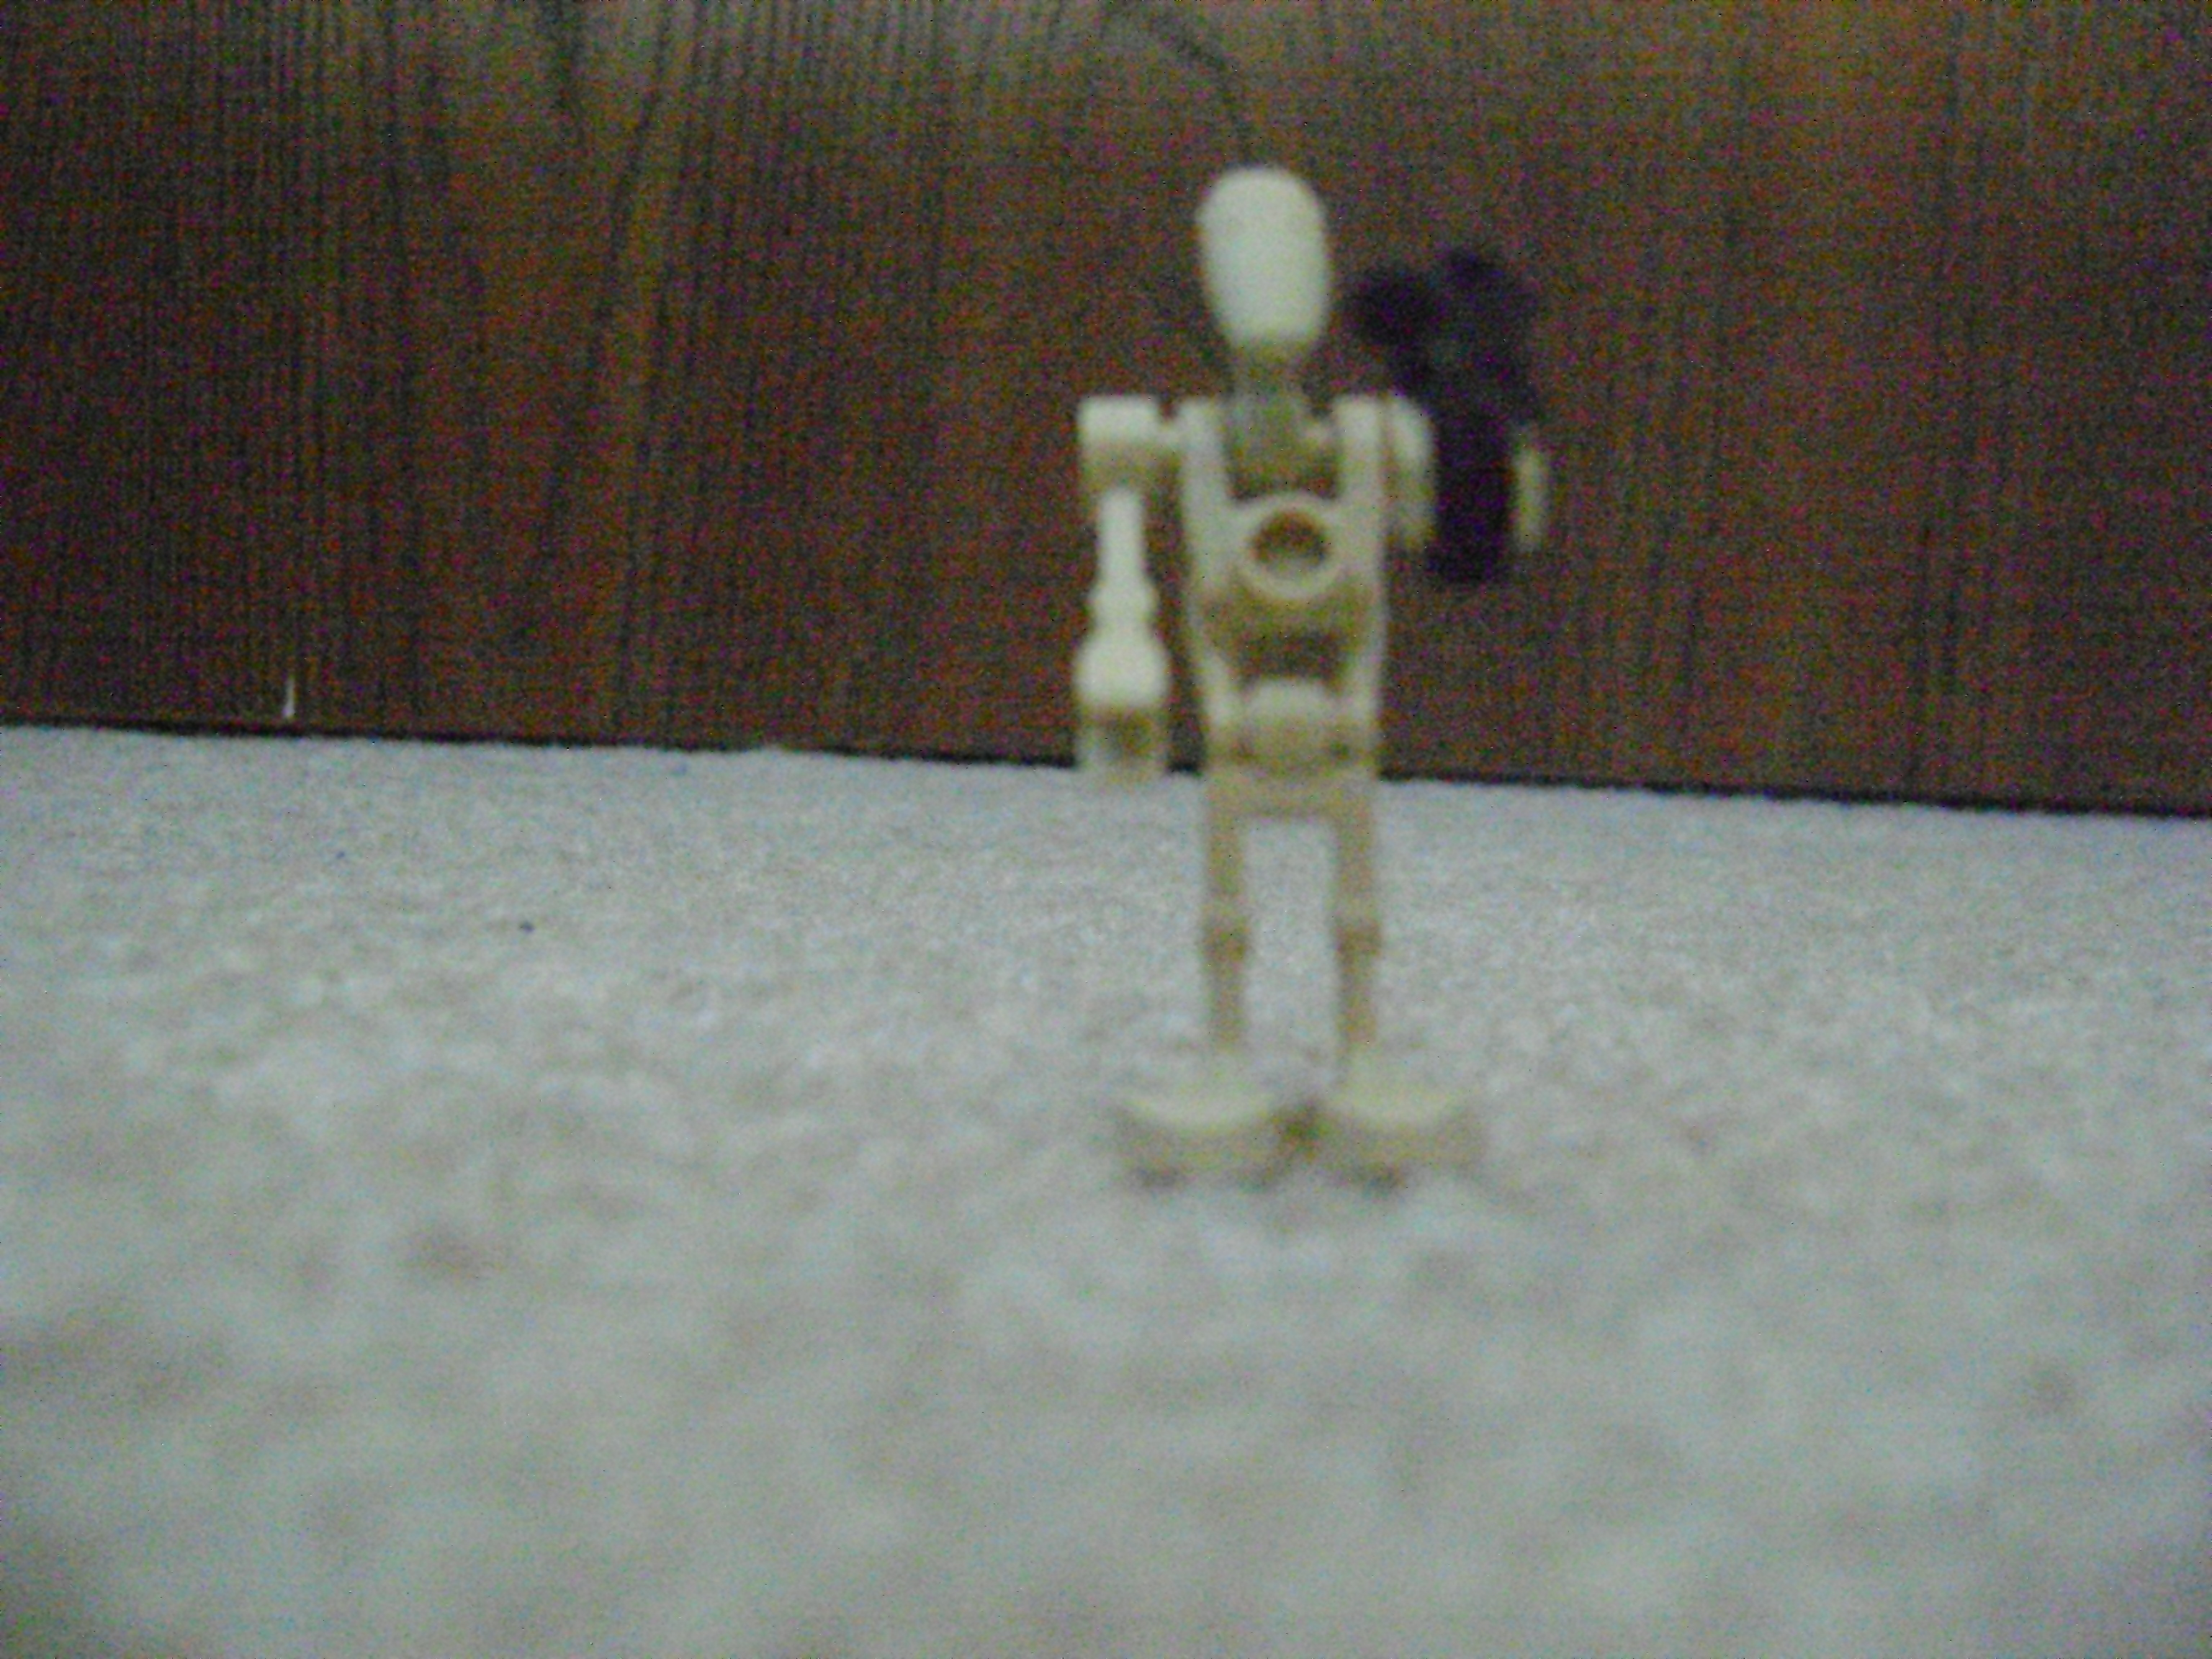 How to Make a Lego Droid With Gun